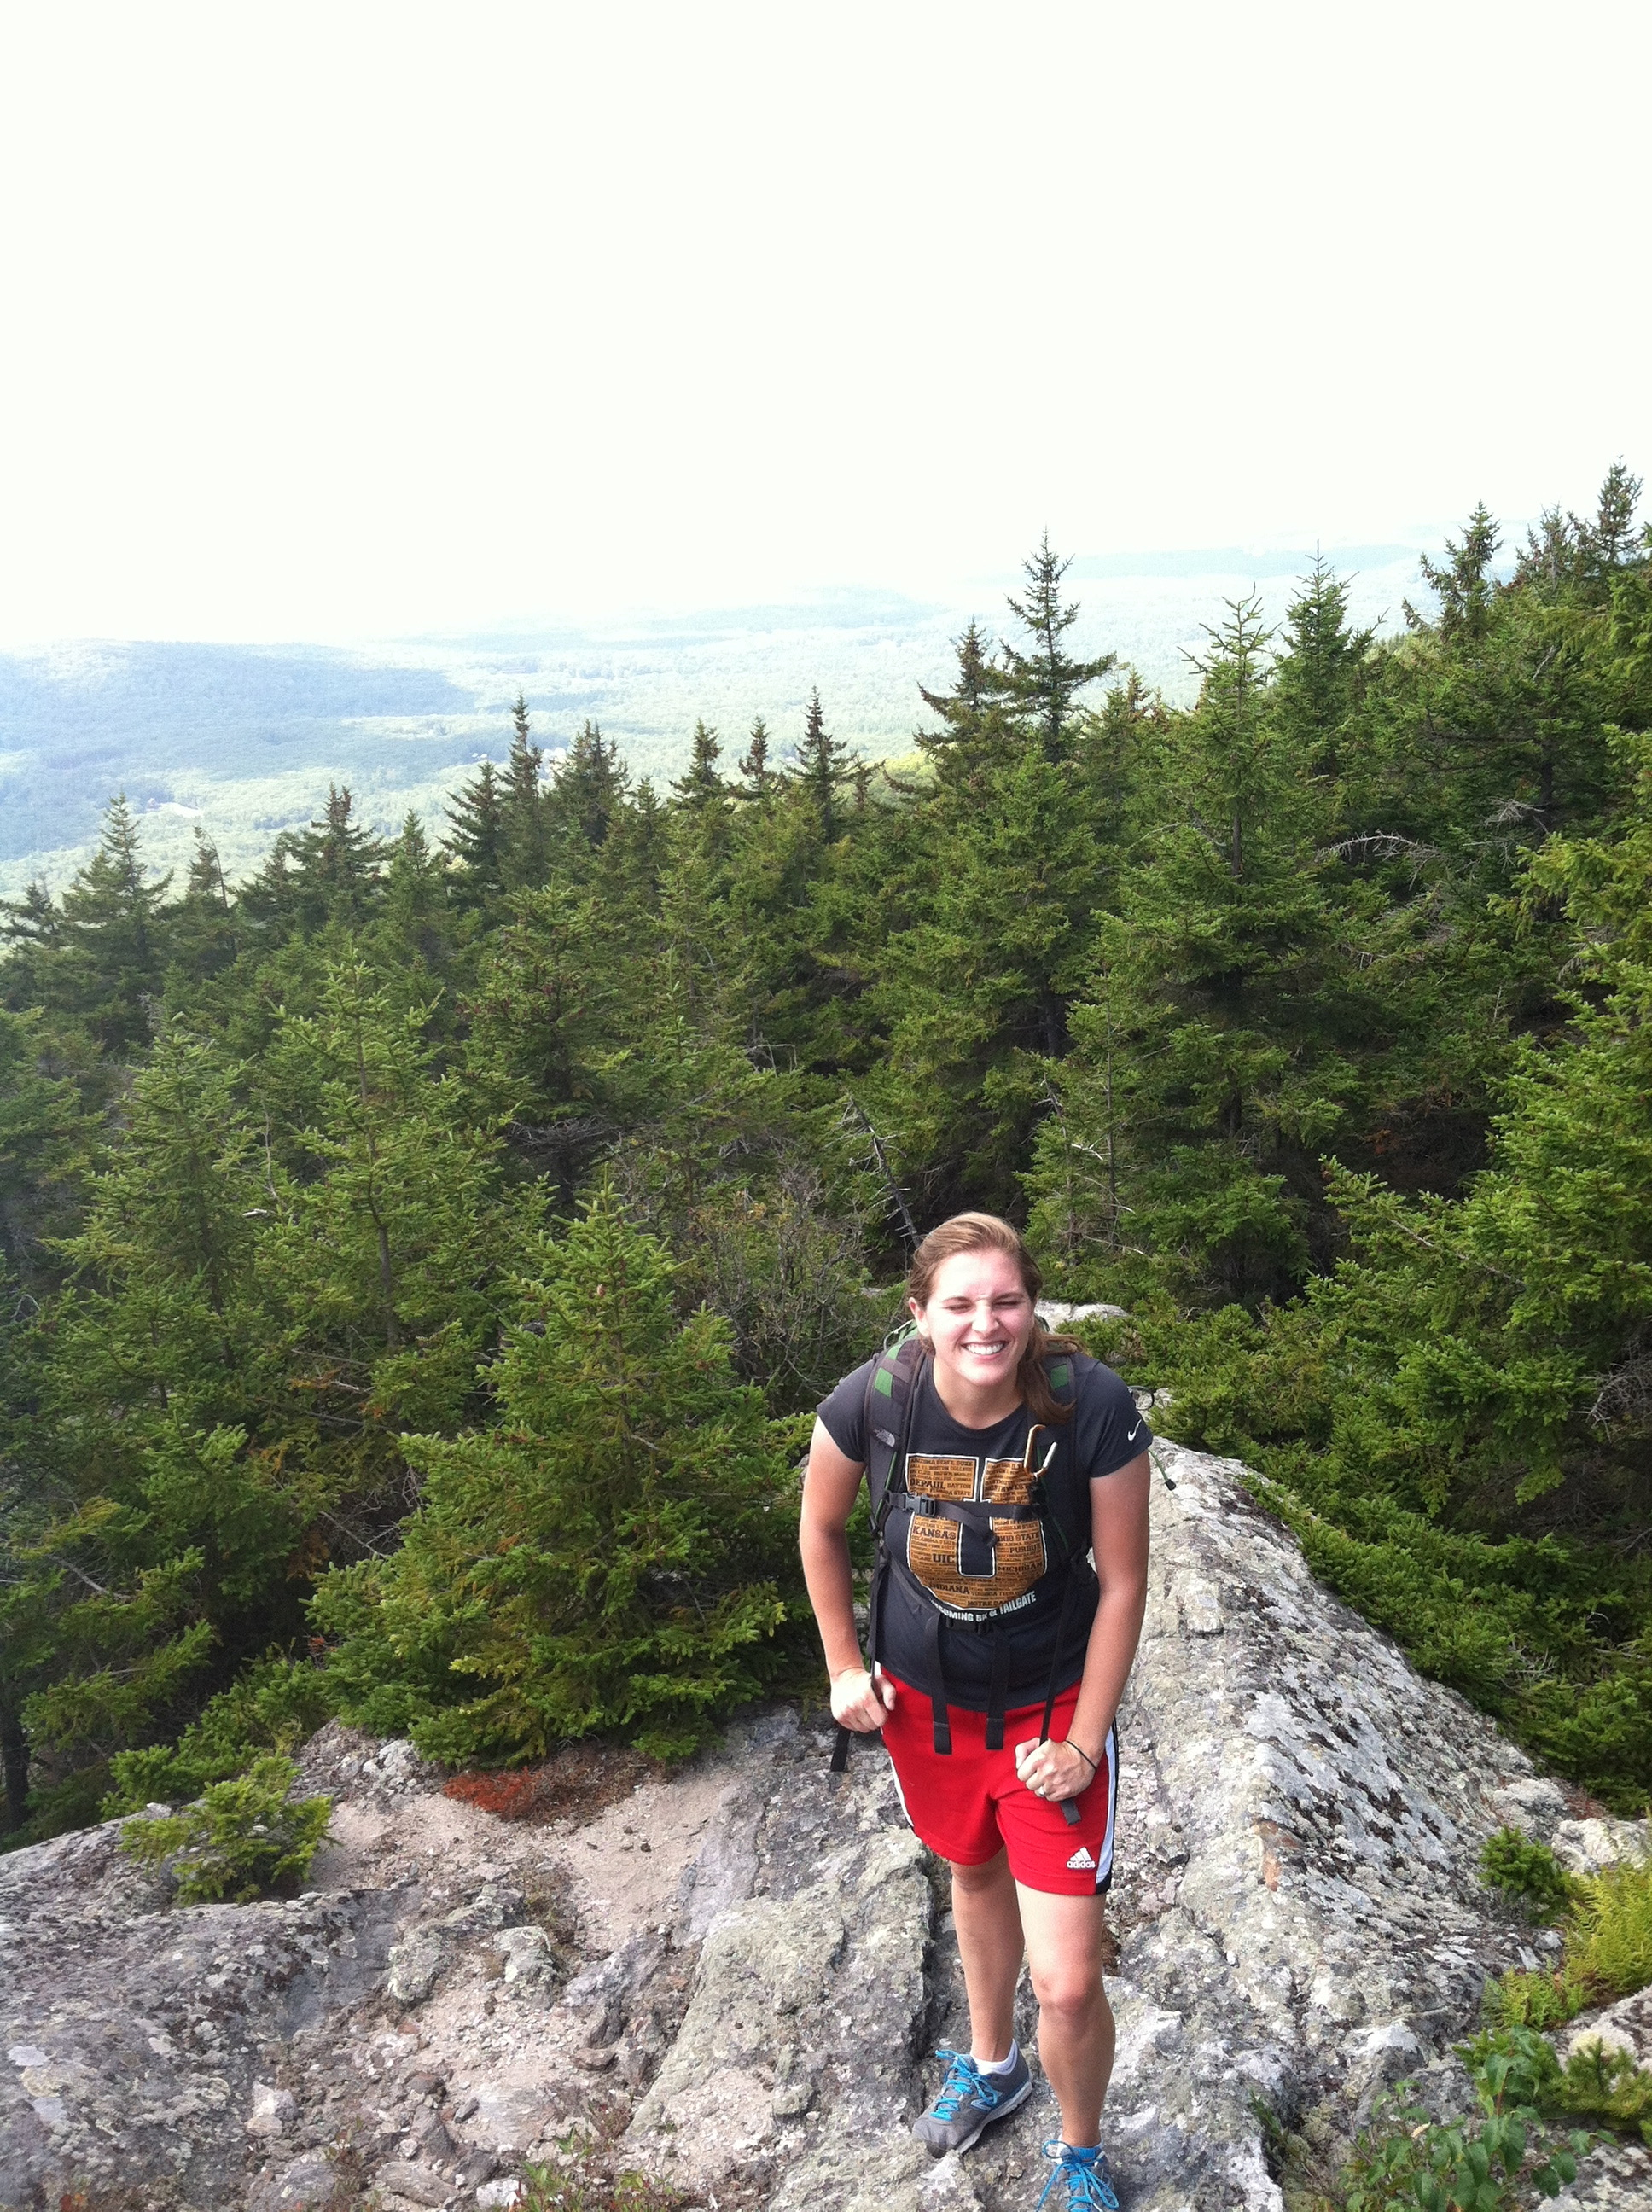 Gasping for breath on Mount Monadnock